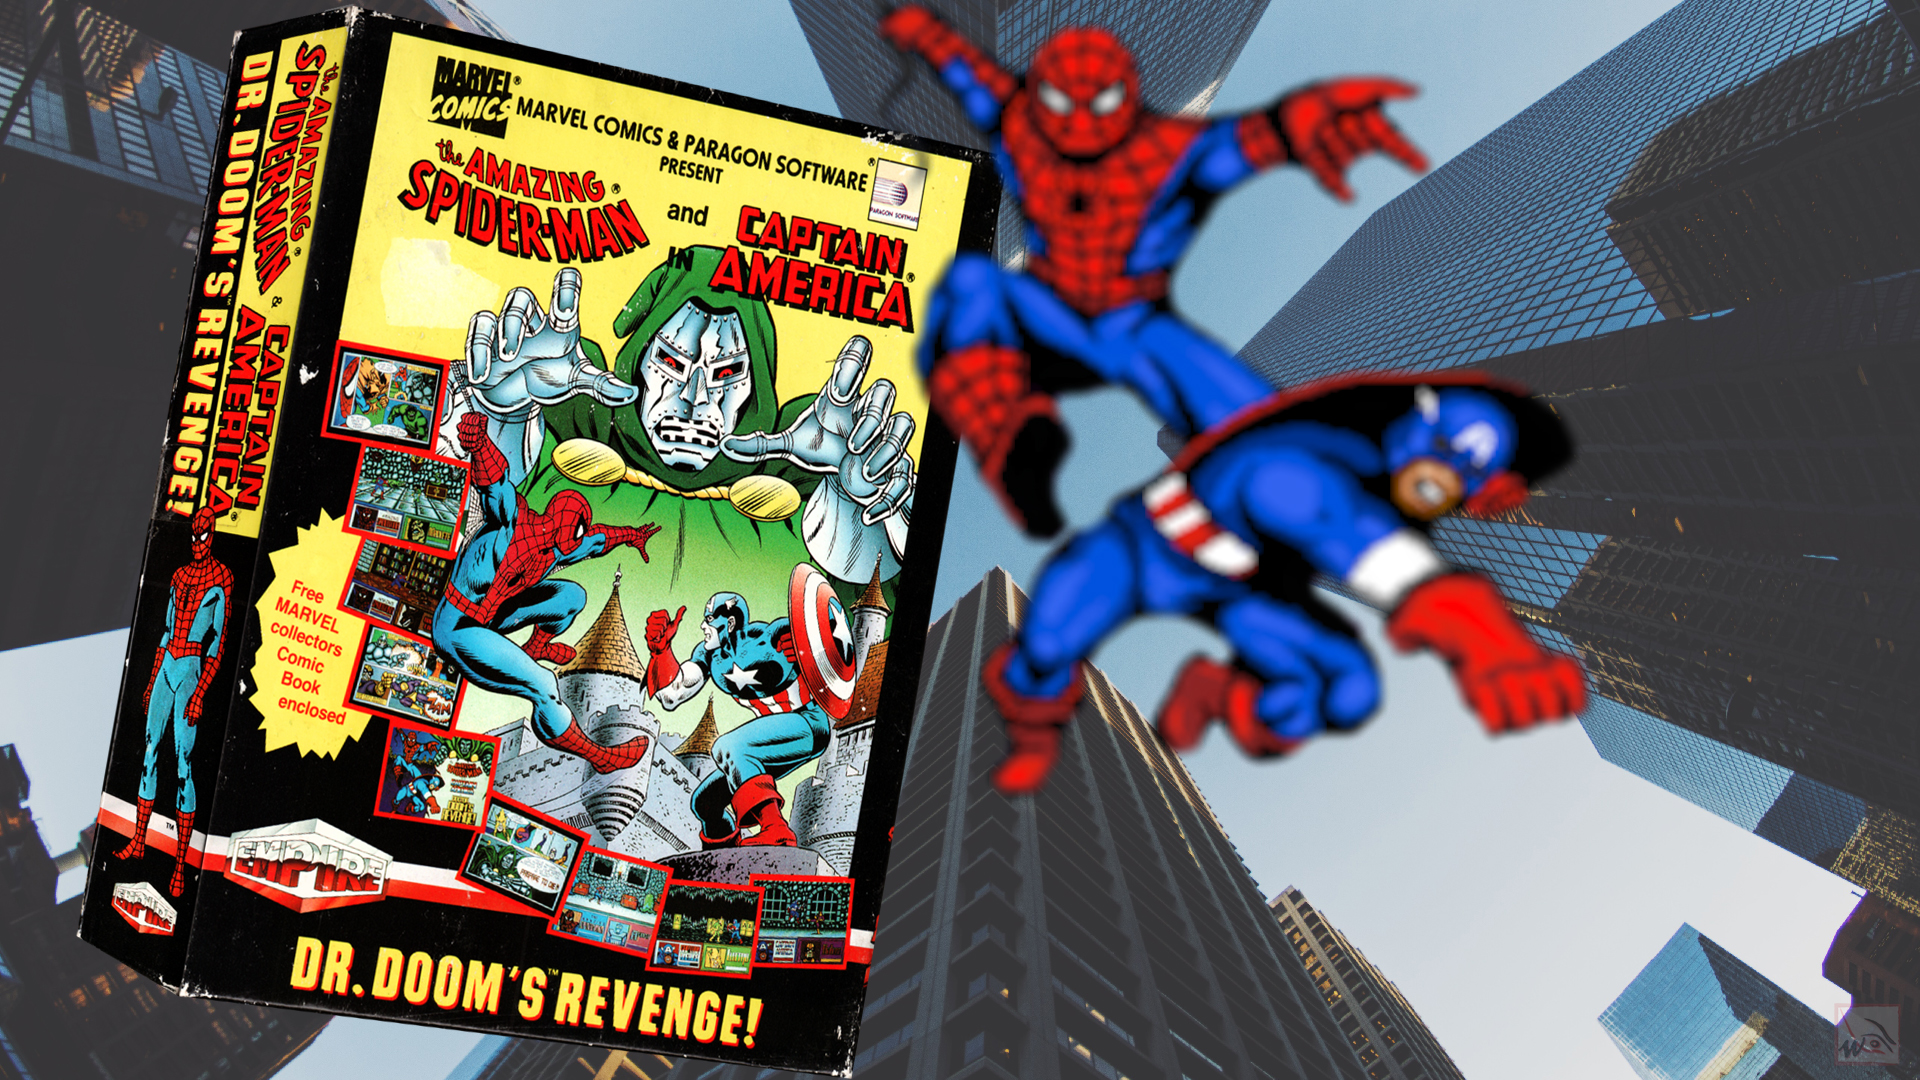 """""""Spider-Man and Captain America in Doctor Doom's Revenge"""" from Paragon Software"""